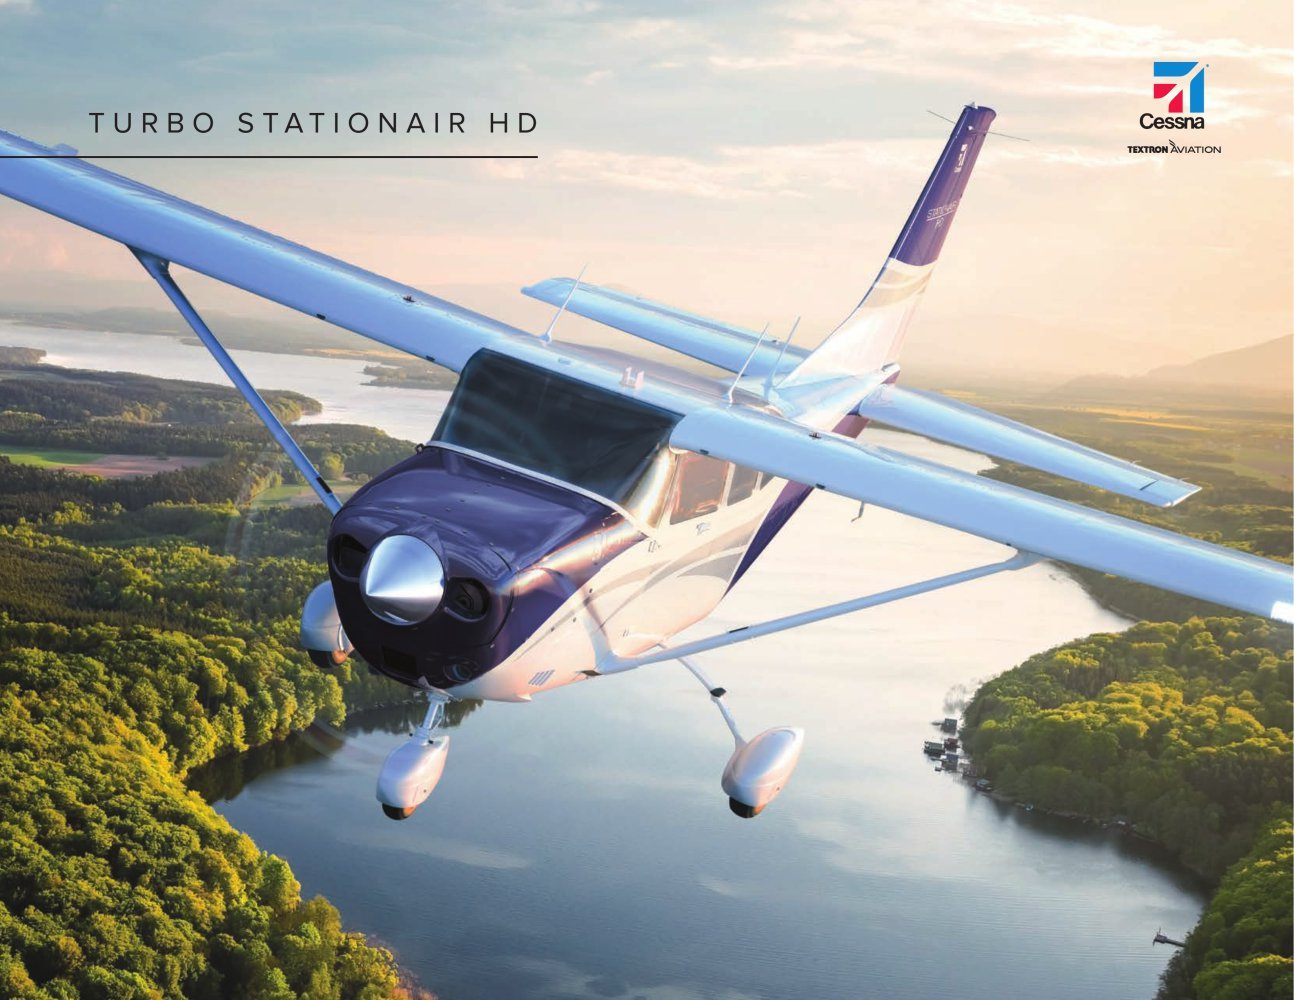 Cessna Turbo Stationair HD - 1 / 11 Pages